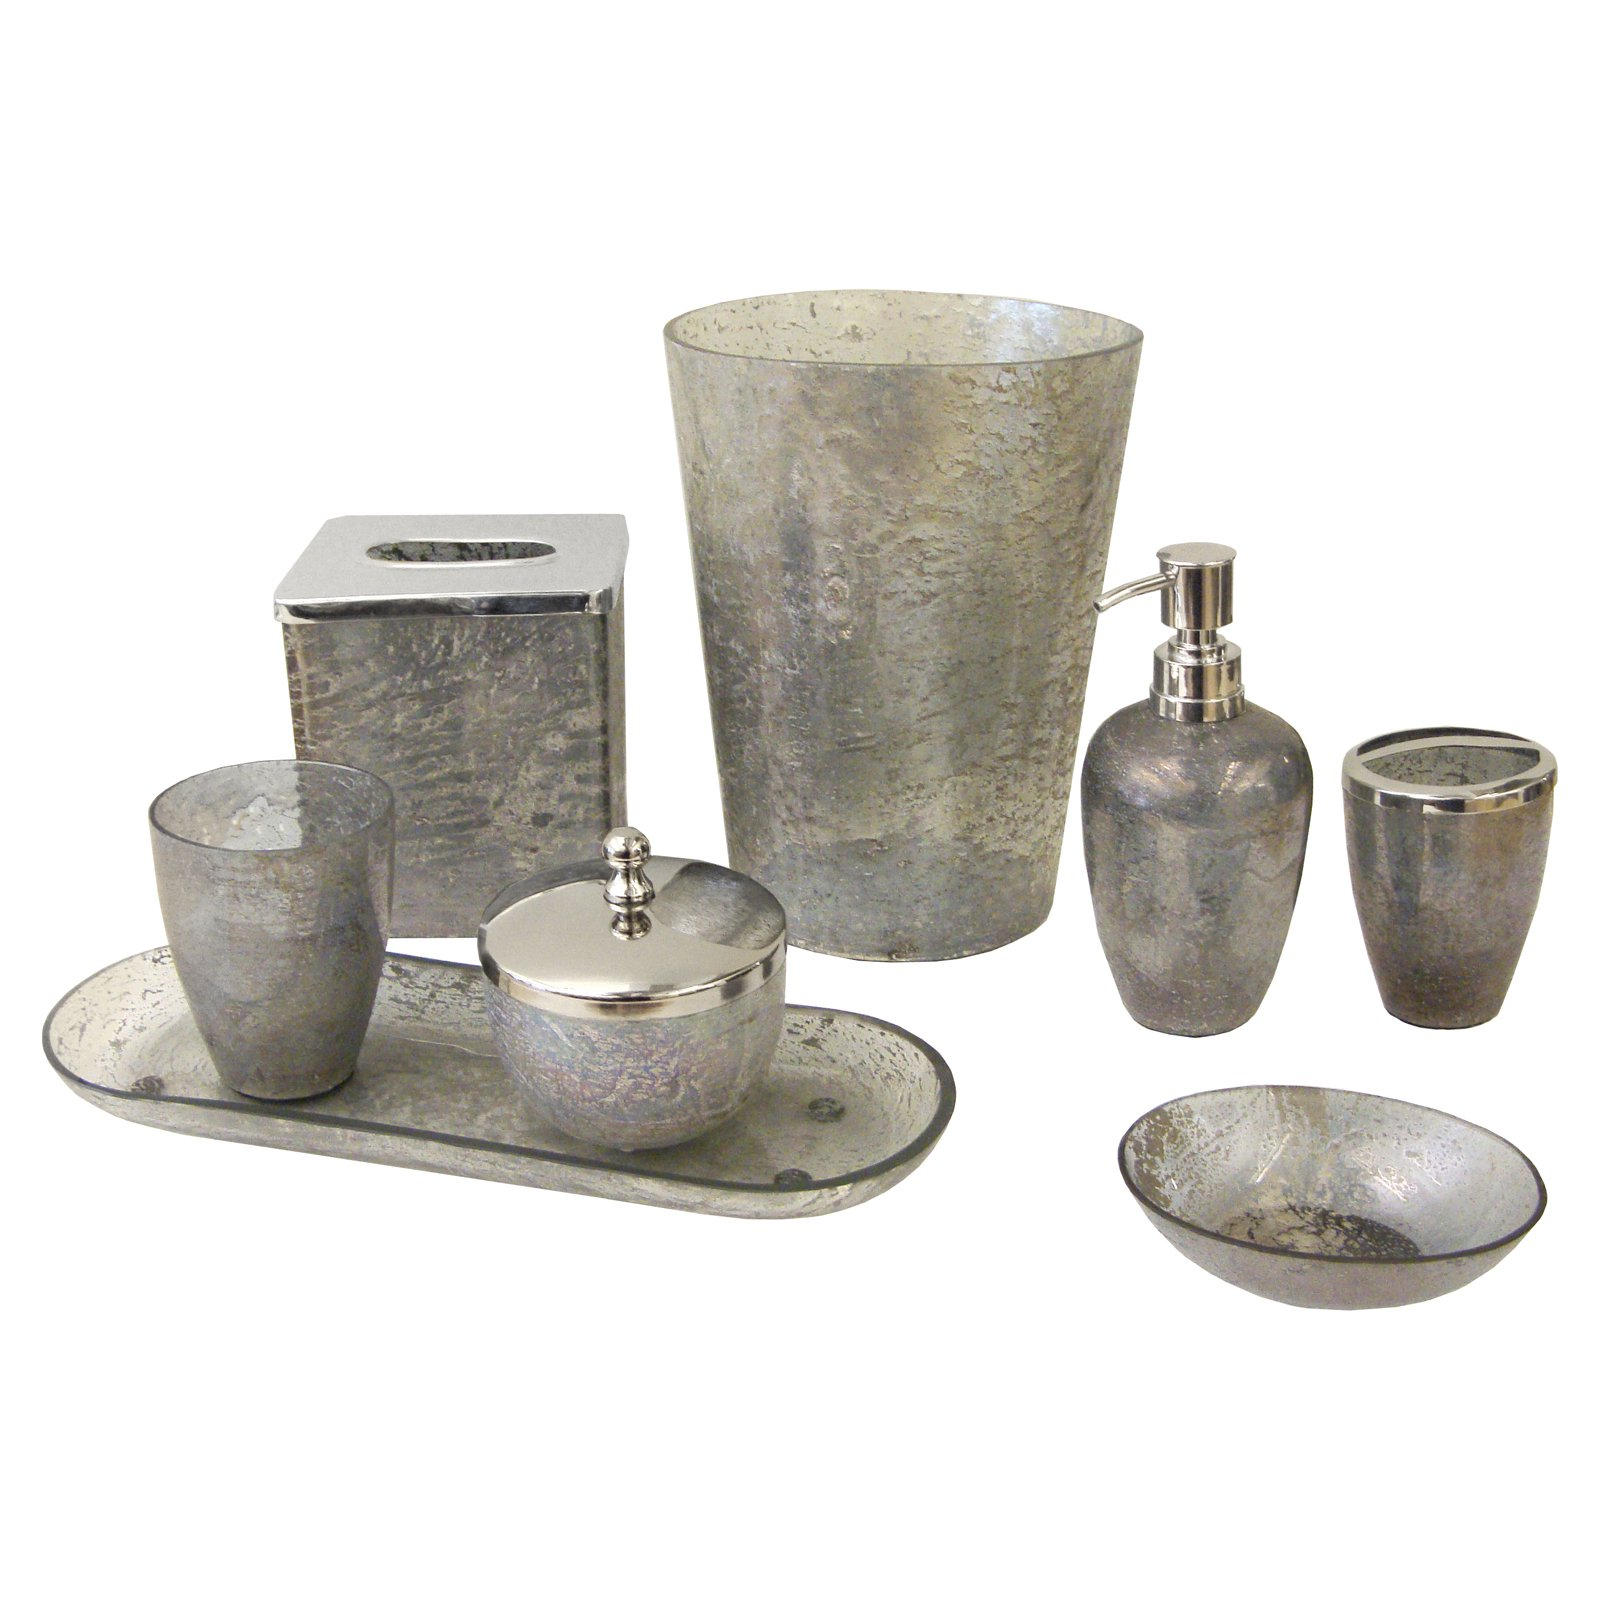 Paradigm Trends 8 Piece Lava Grey Bathroom Accessories Set Walmart Com Walmart Com